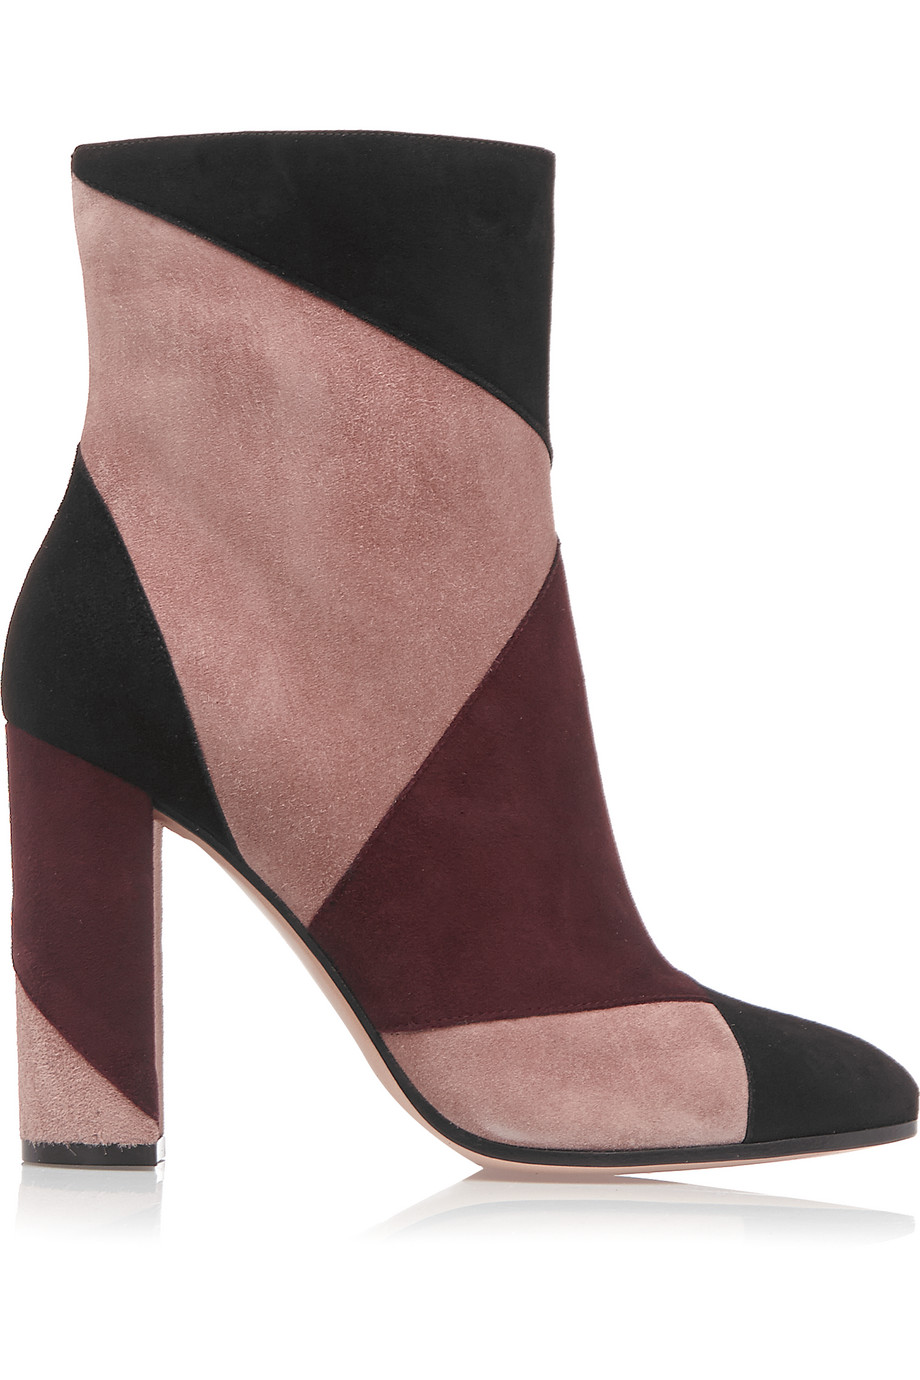 Gianvito Rossi Patchwork Suede Ankle Boots, Burgundy/Antique Rose, Women's US Size: 4.5, Size: 35